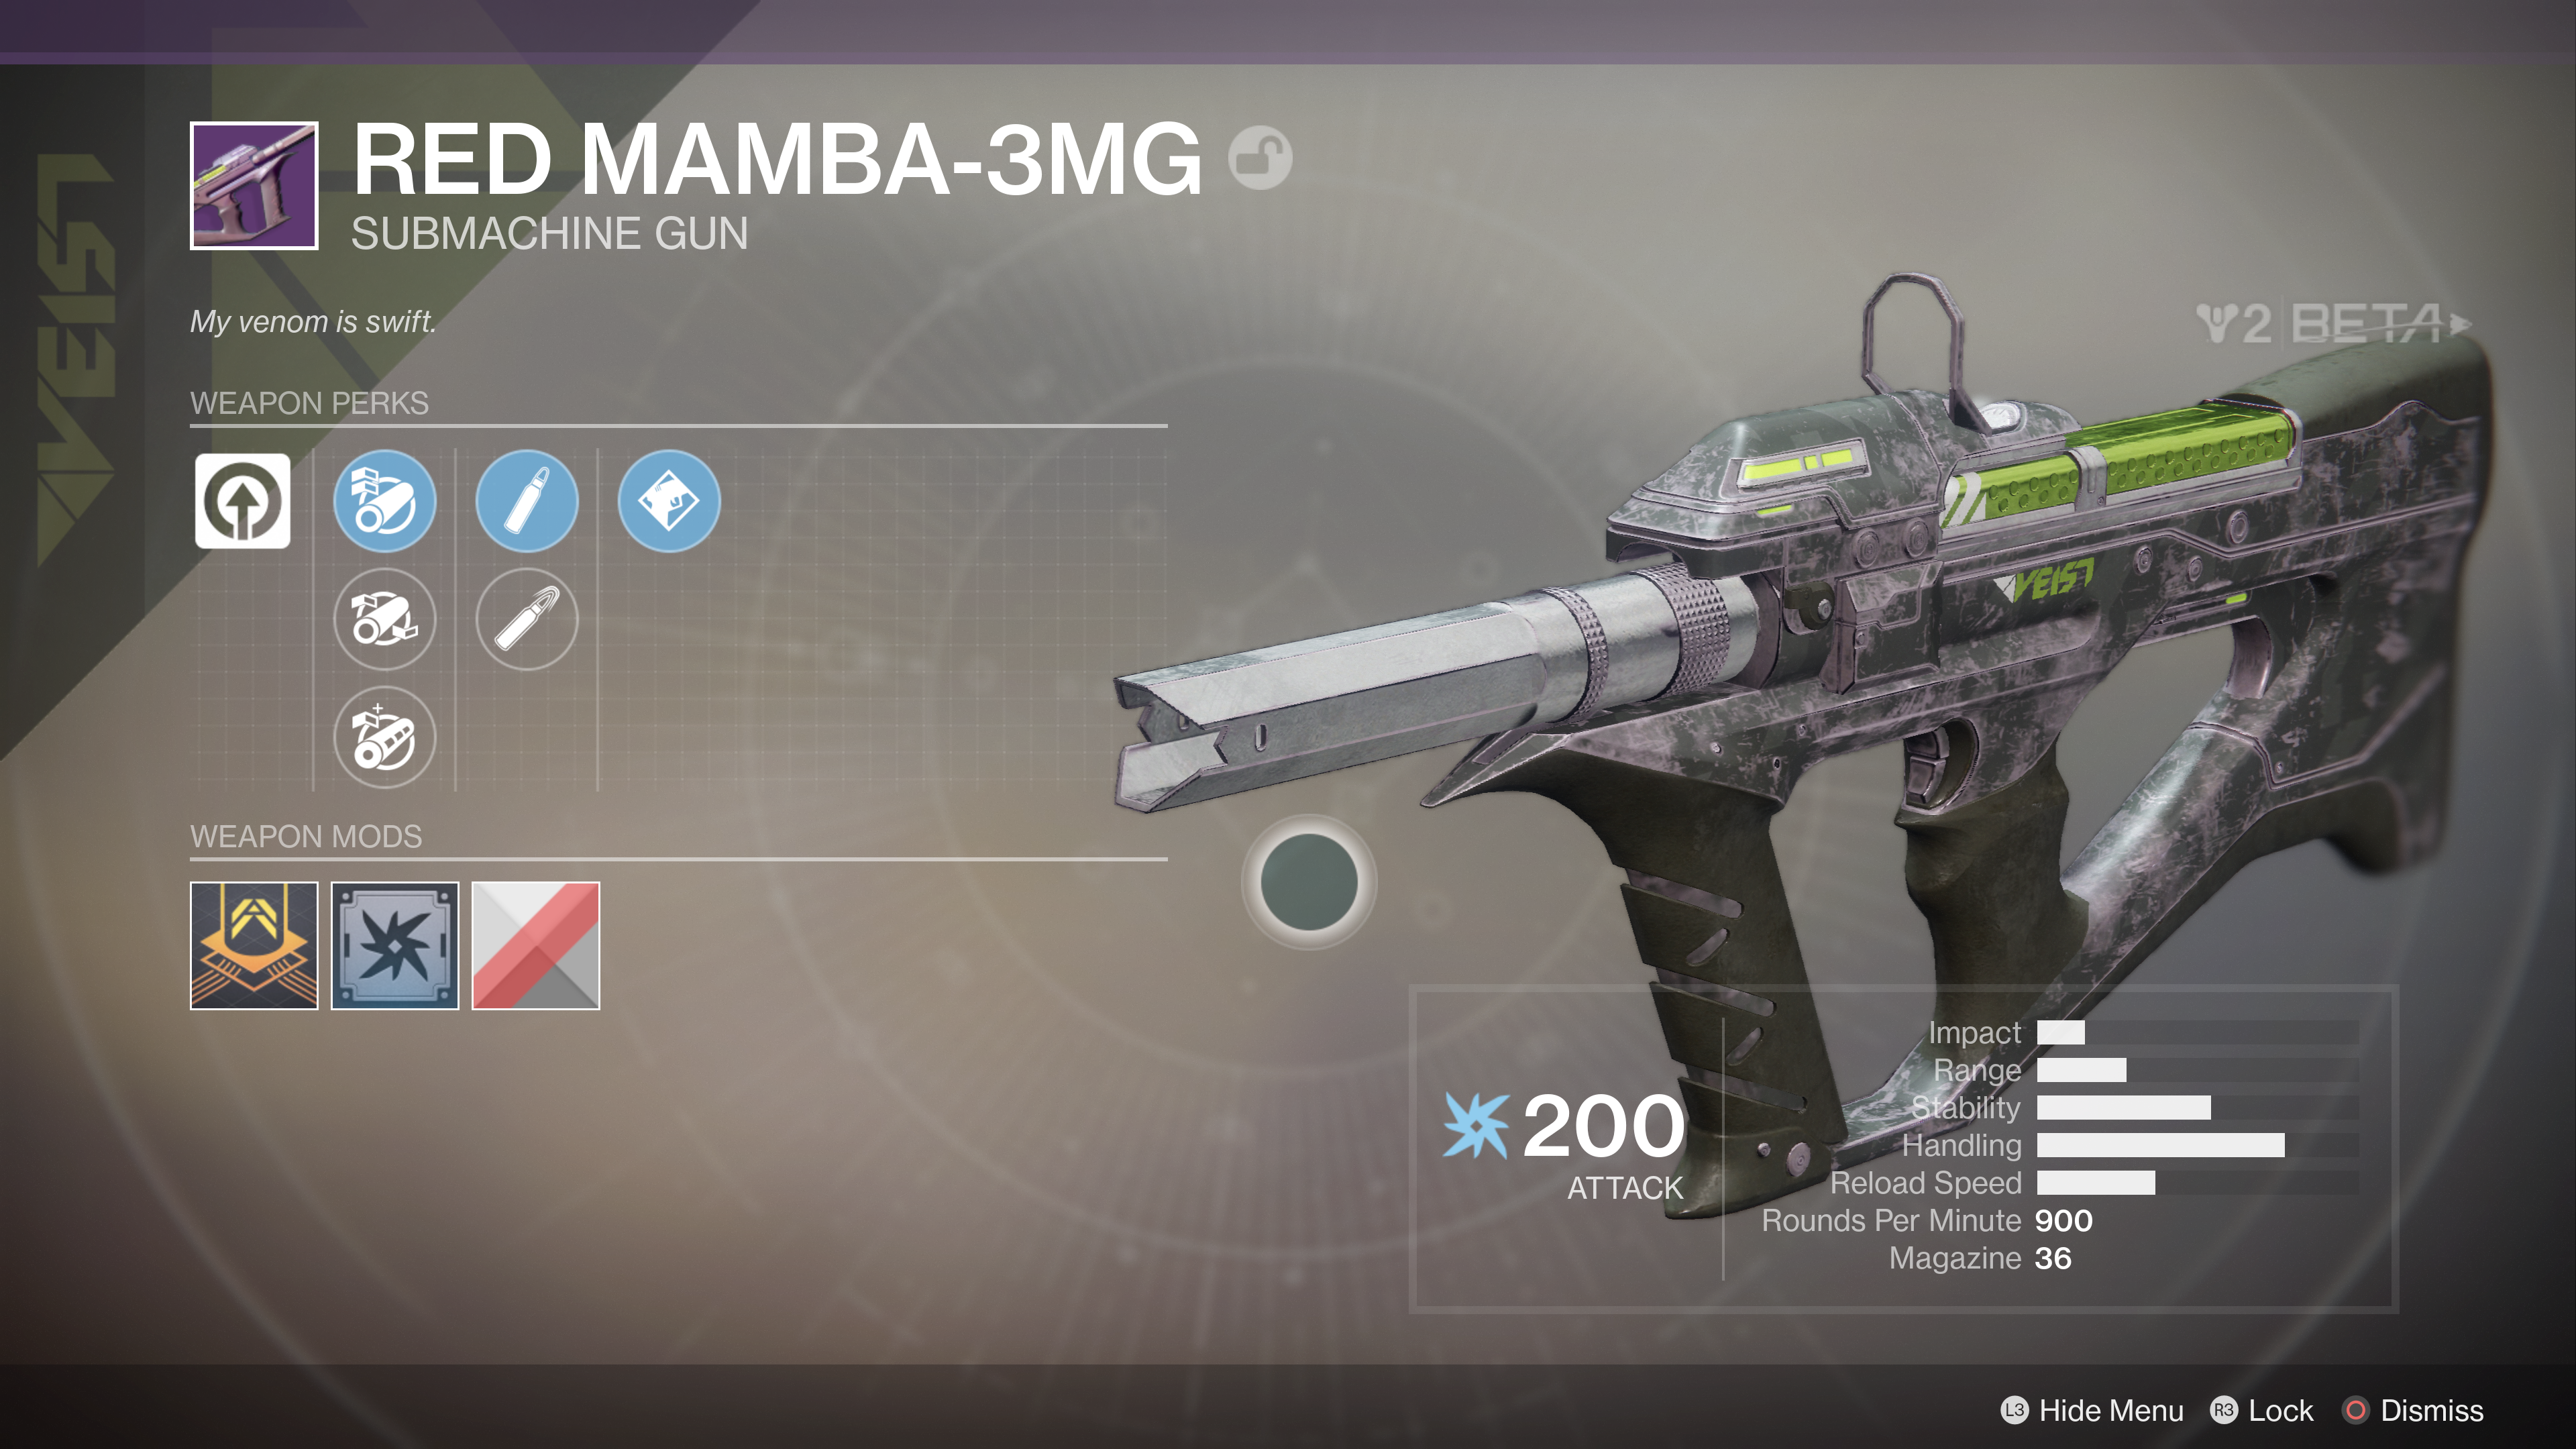 destiny 2 beta red mamba-3mg